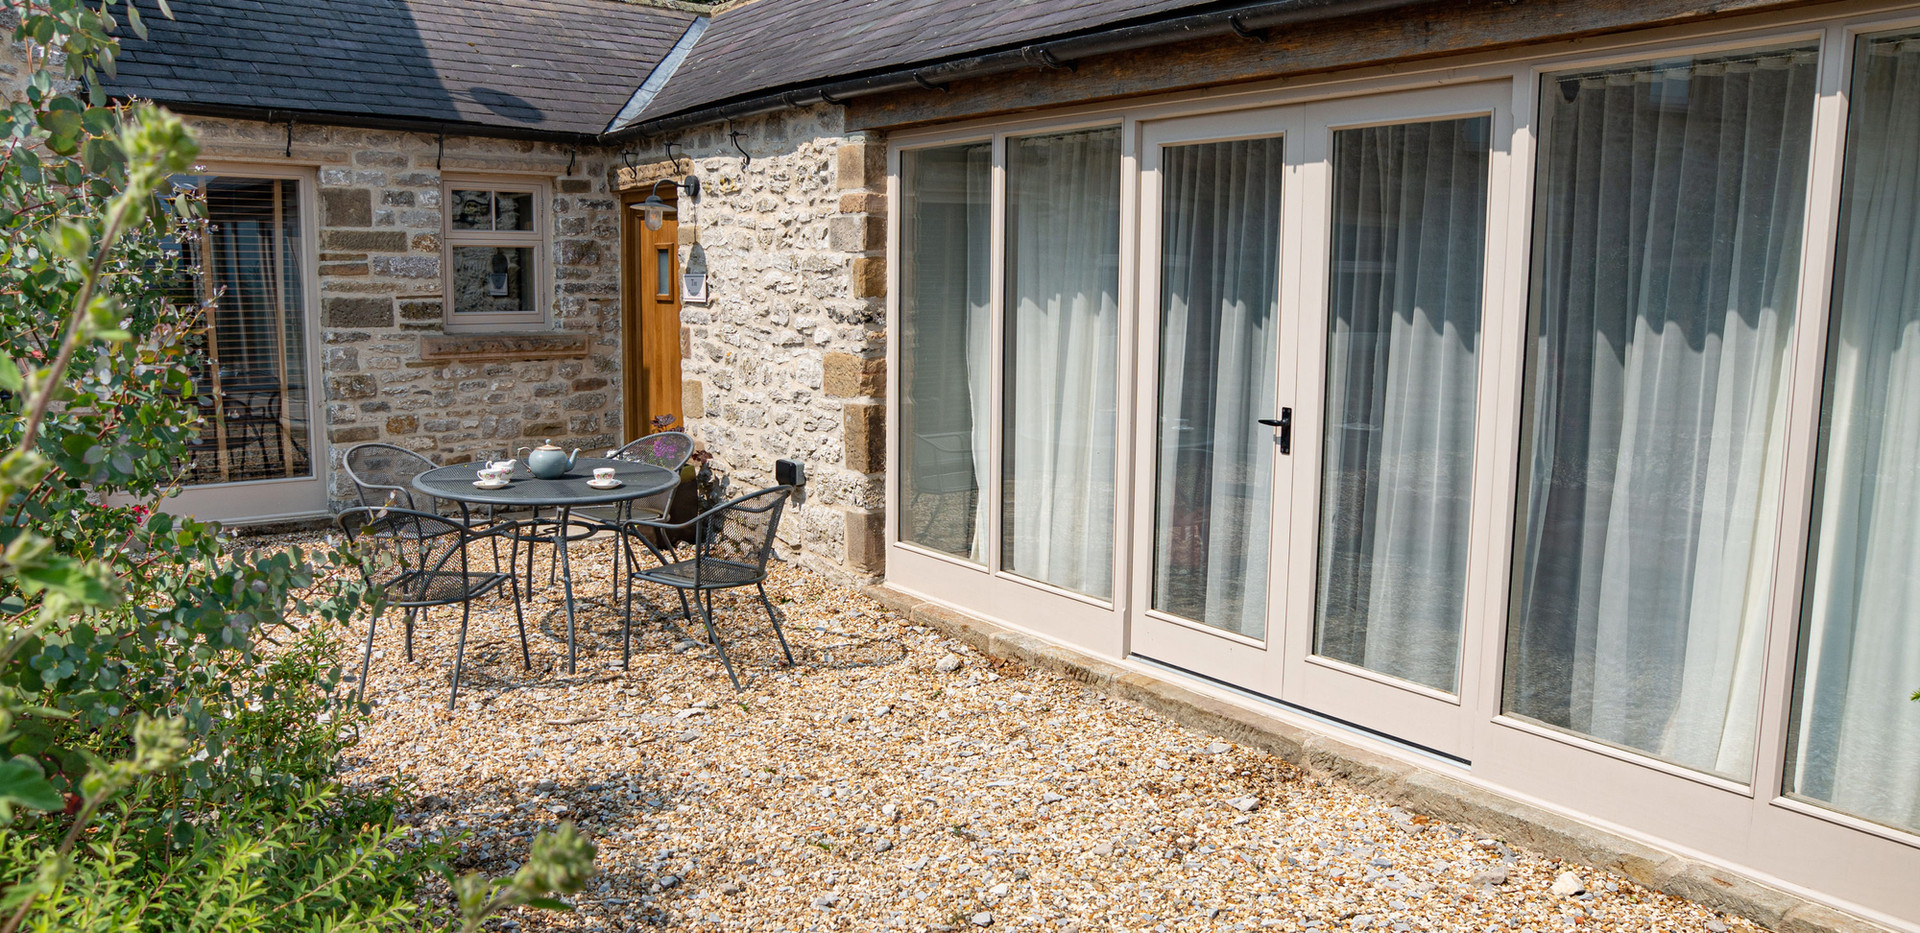 The Cowshed - sleeps 4